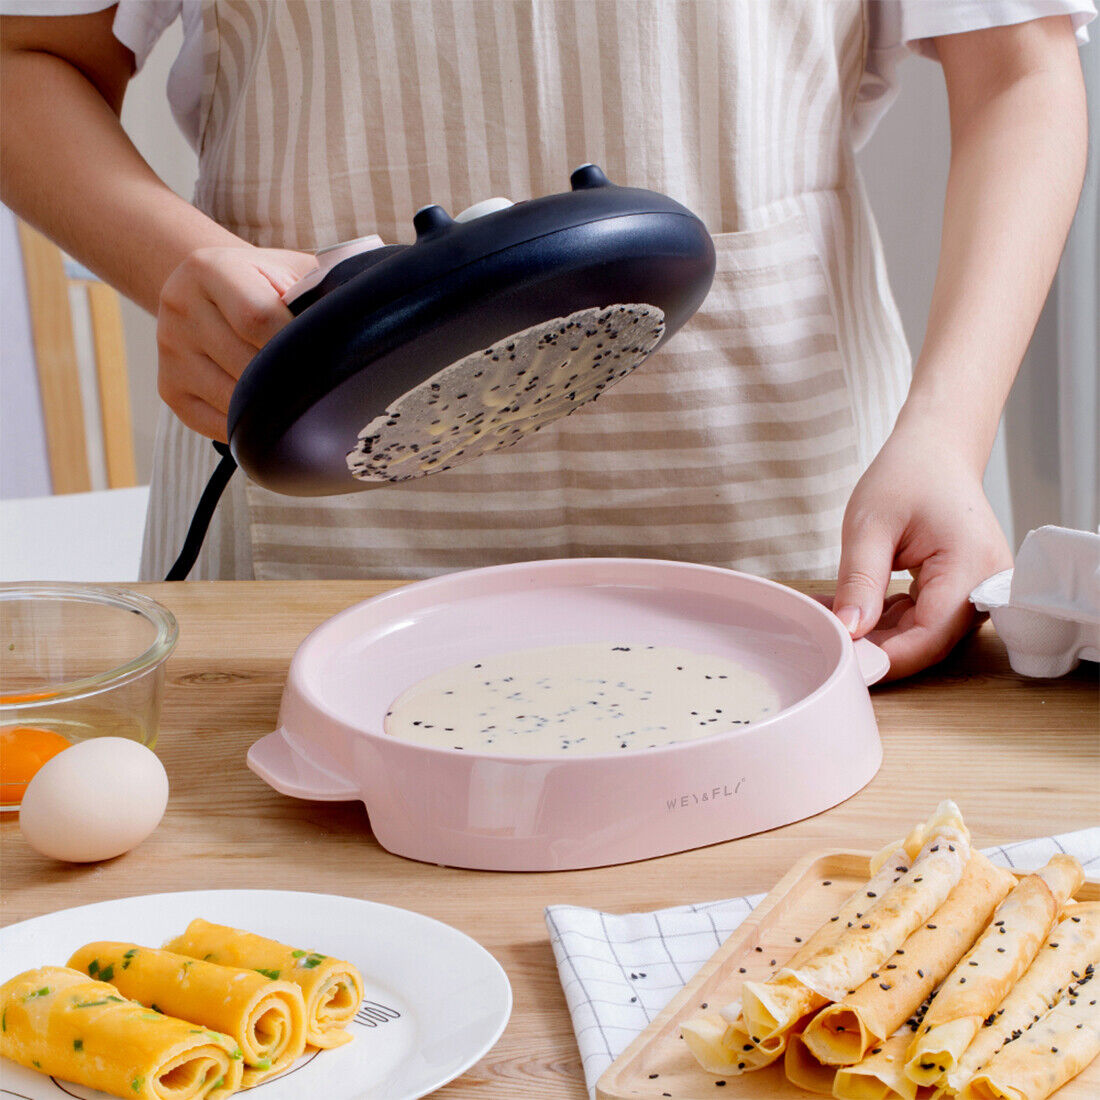 Crepe Maker Machine Pancake Griddle Nonstick Batter Spreader